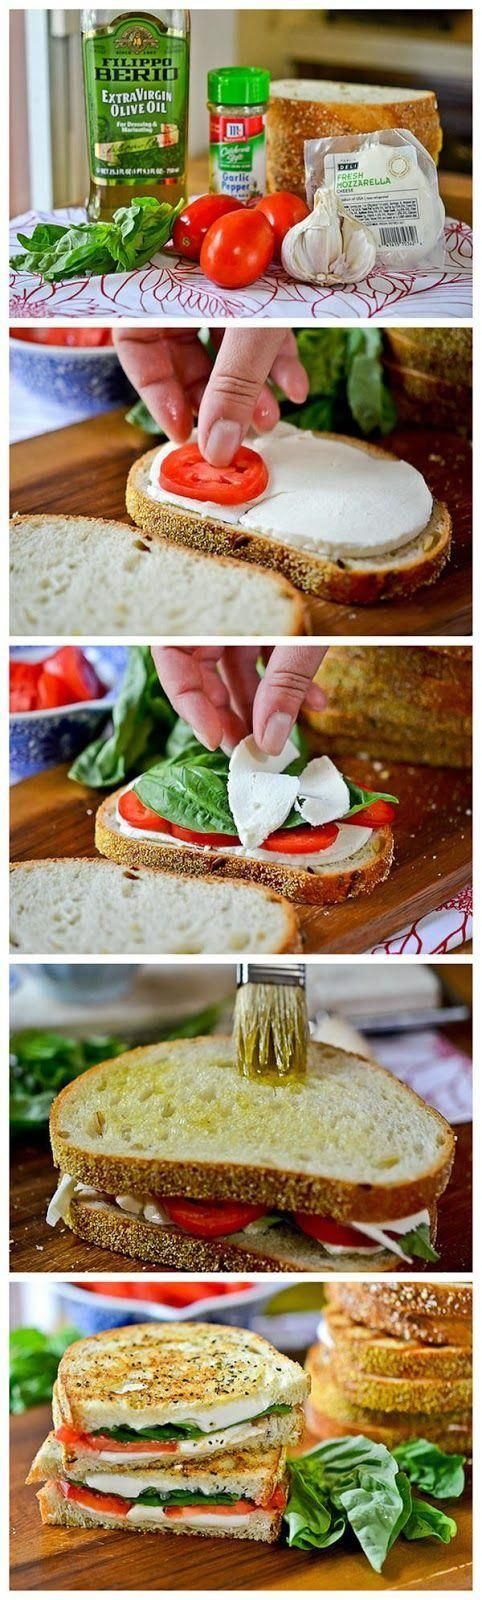 Grilled Margherita Sandwiches. Why haven't I thought of this?!?